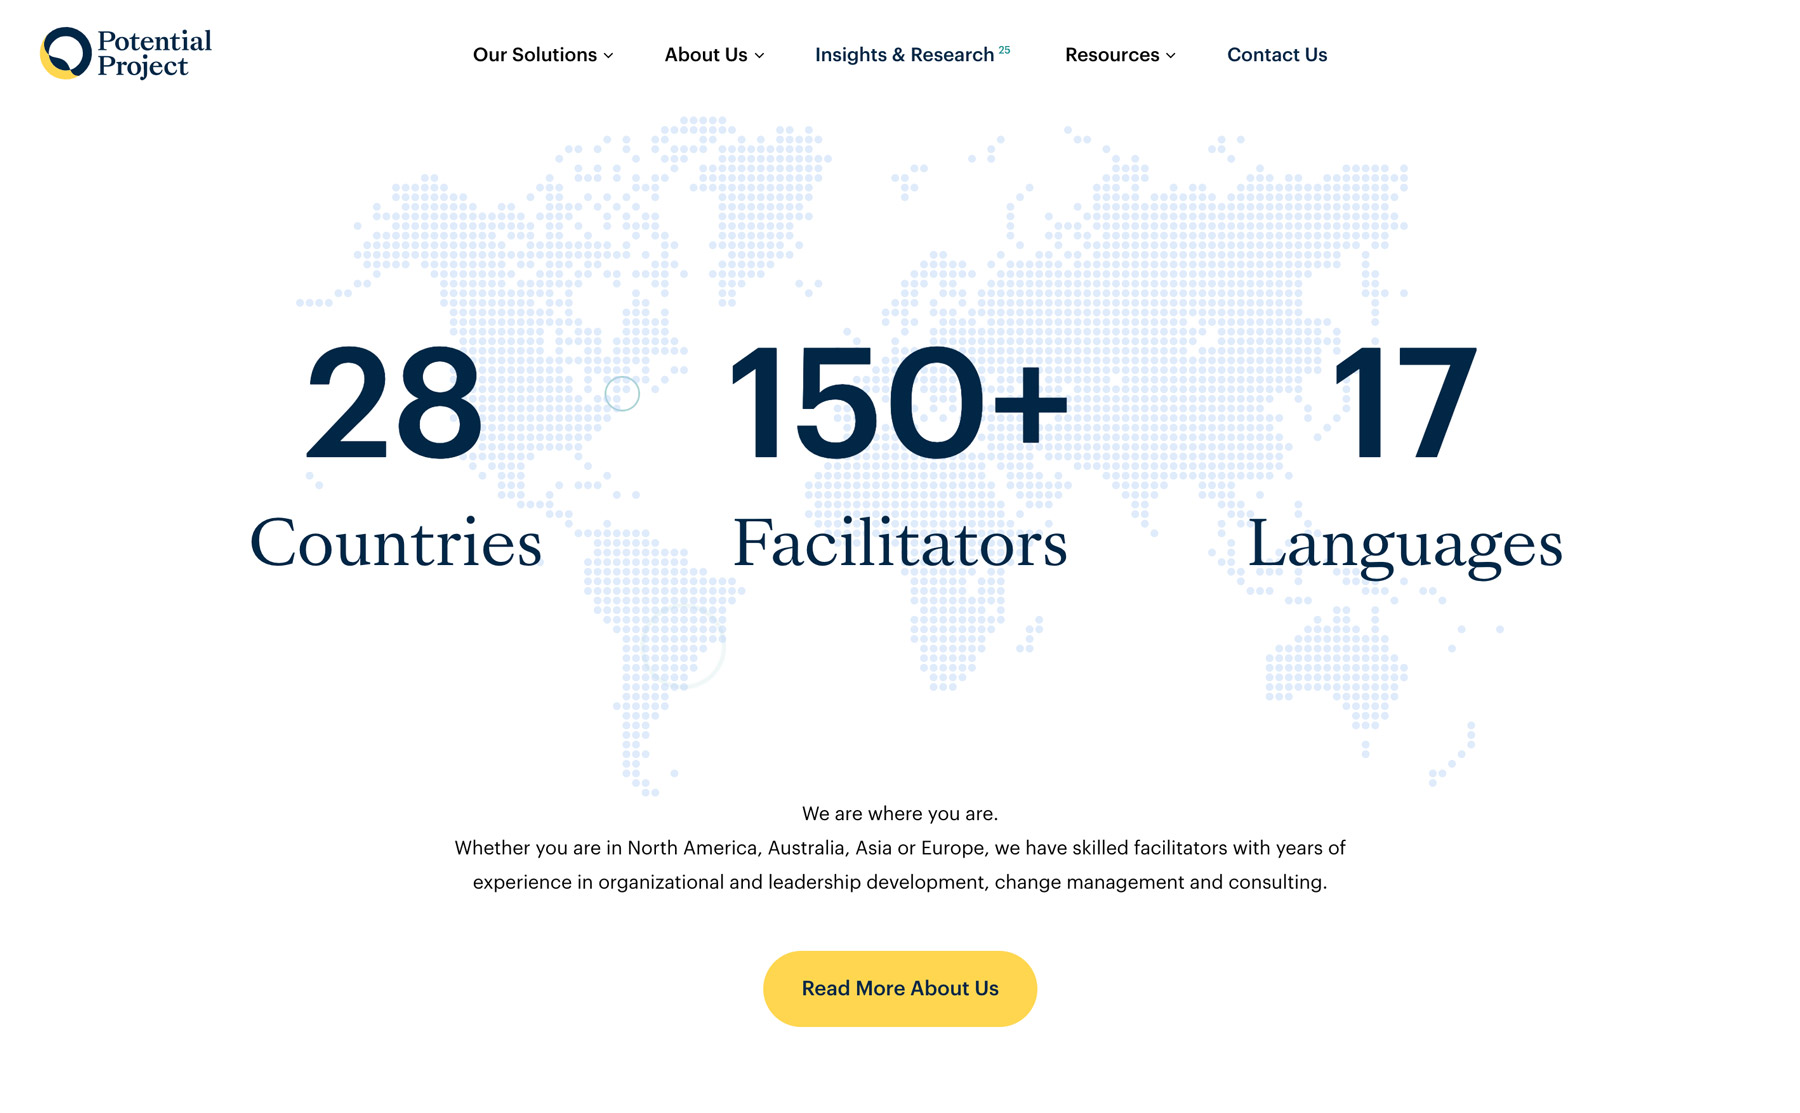 the picture shows that the new website can tell where they are located in the world